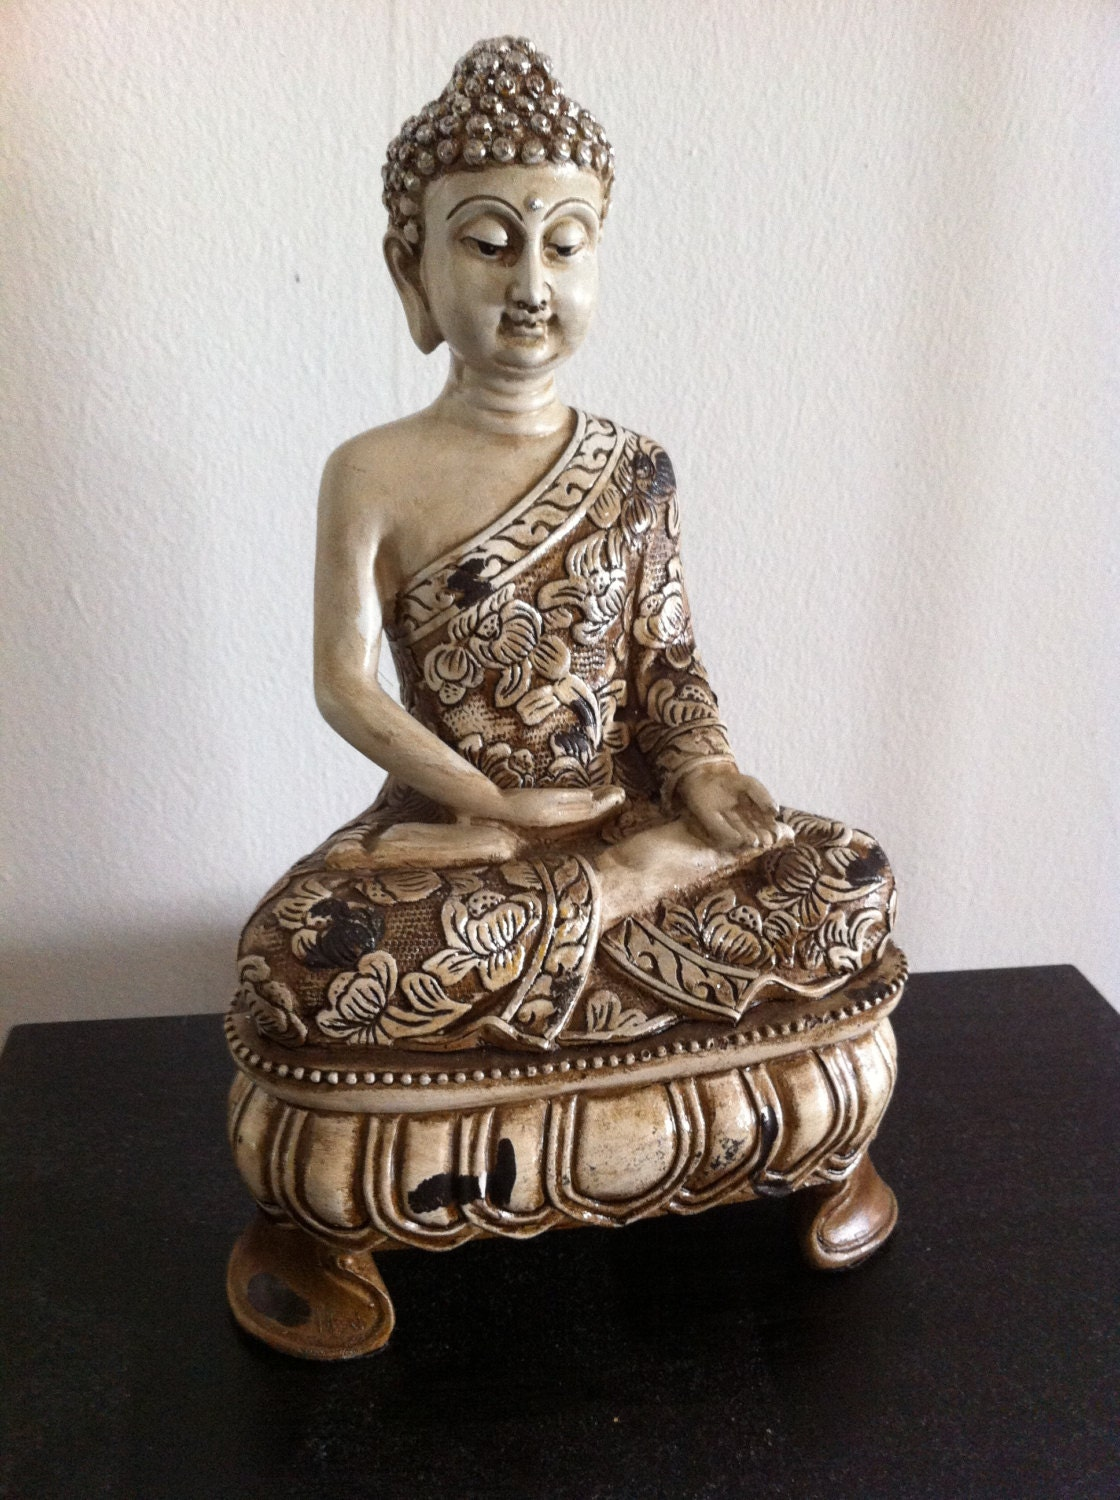 sitting buddha statue ivory white ornate by phantomas2011 on etsy. Black Bedroom Furniture Sets. Home Design Ideas